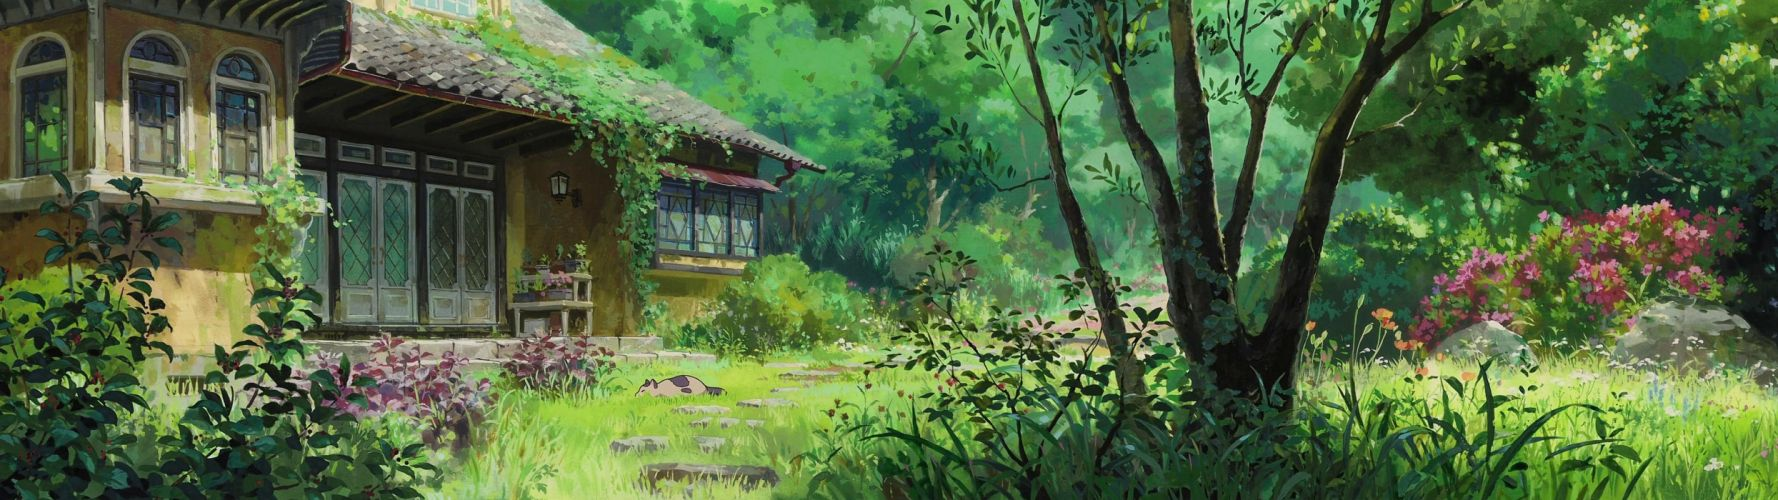 artwork garden cottage multiple display Karigurashi no Arrietty Studio Ghibli dual monitor wallpaper